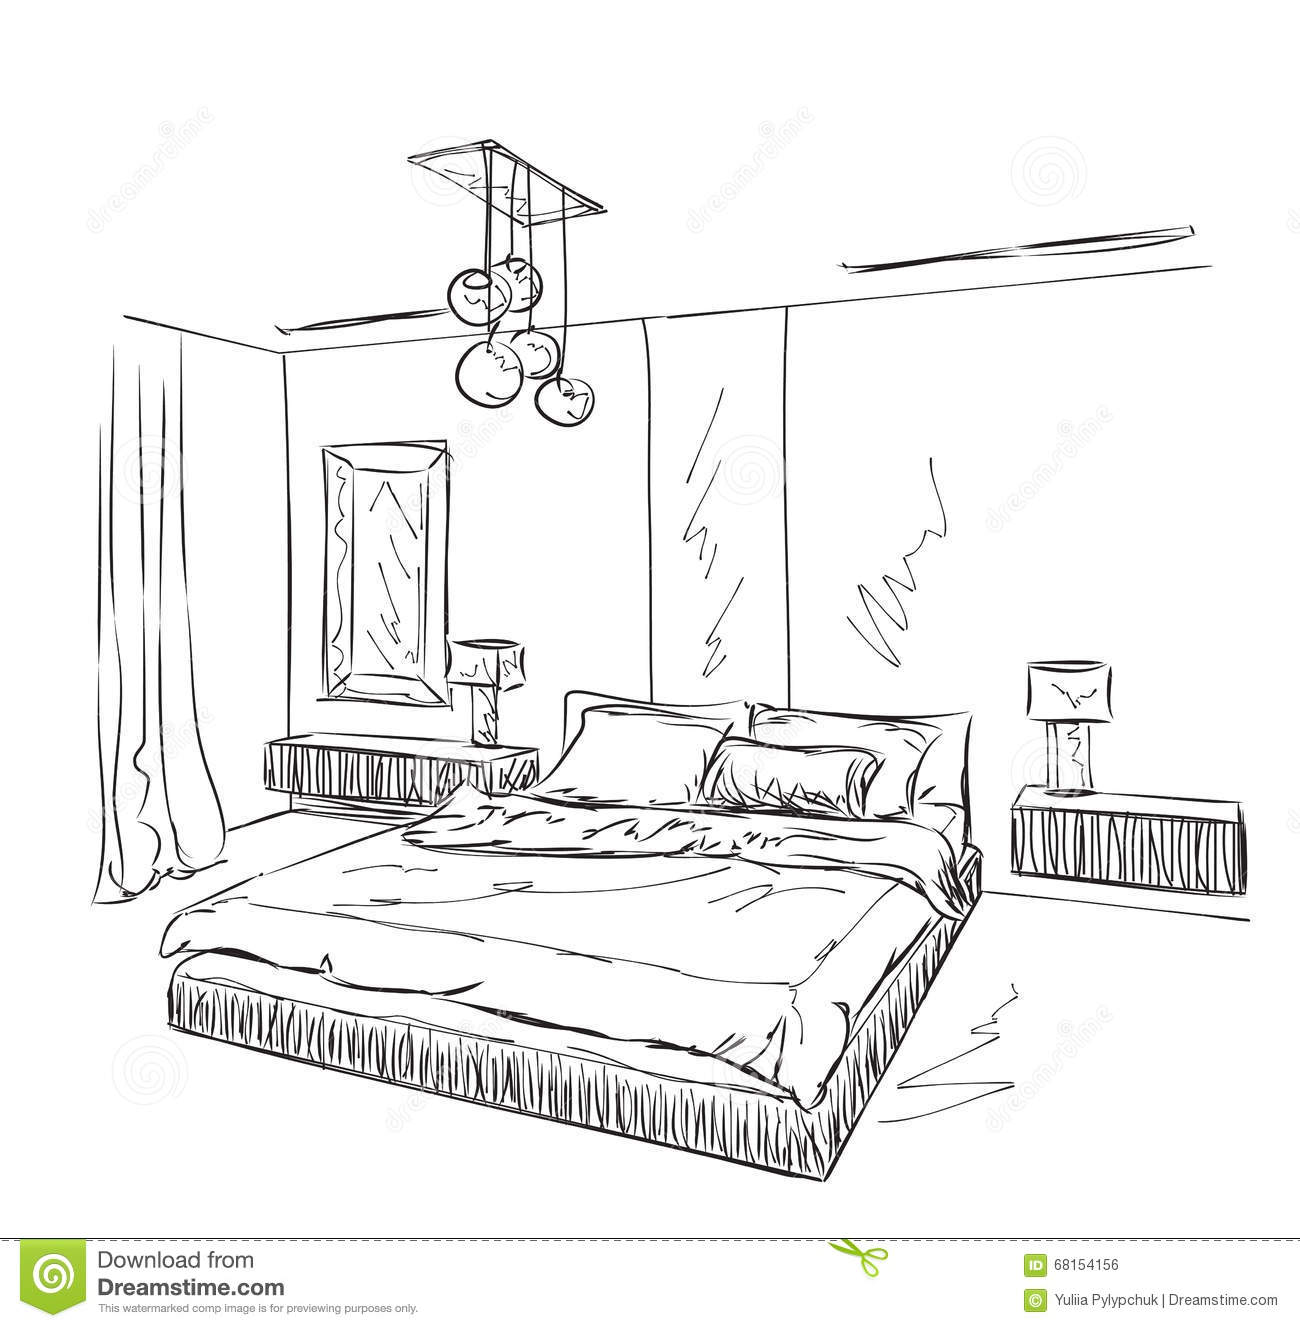 dessin int rieur moderne de chambre coucher illustration de vecteur illustration du vecteur. Black Bedroom Furniture Sets. Home Design Ideas